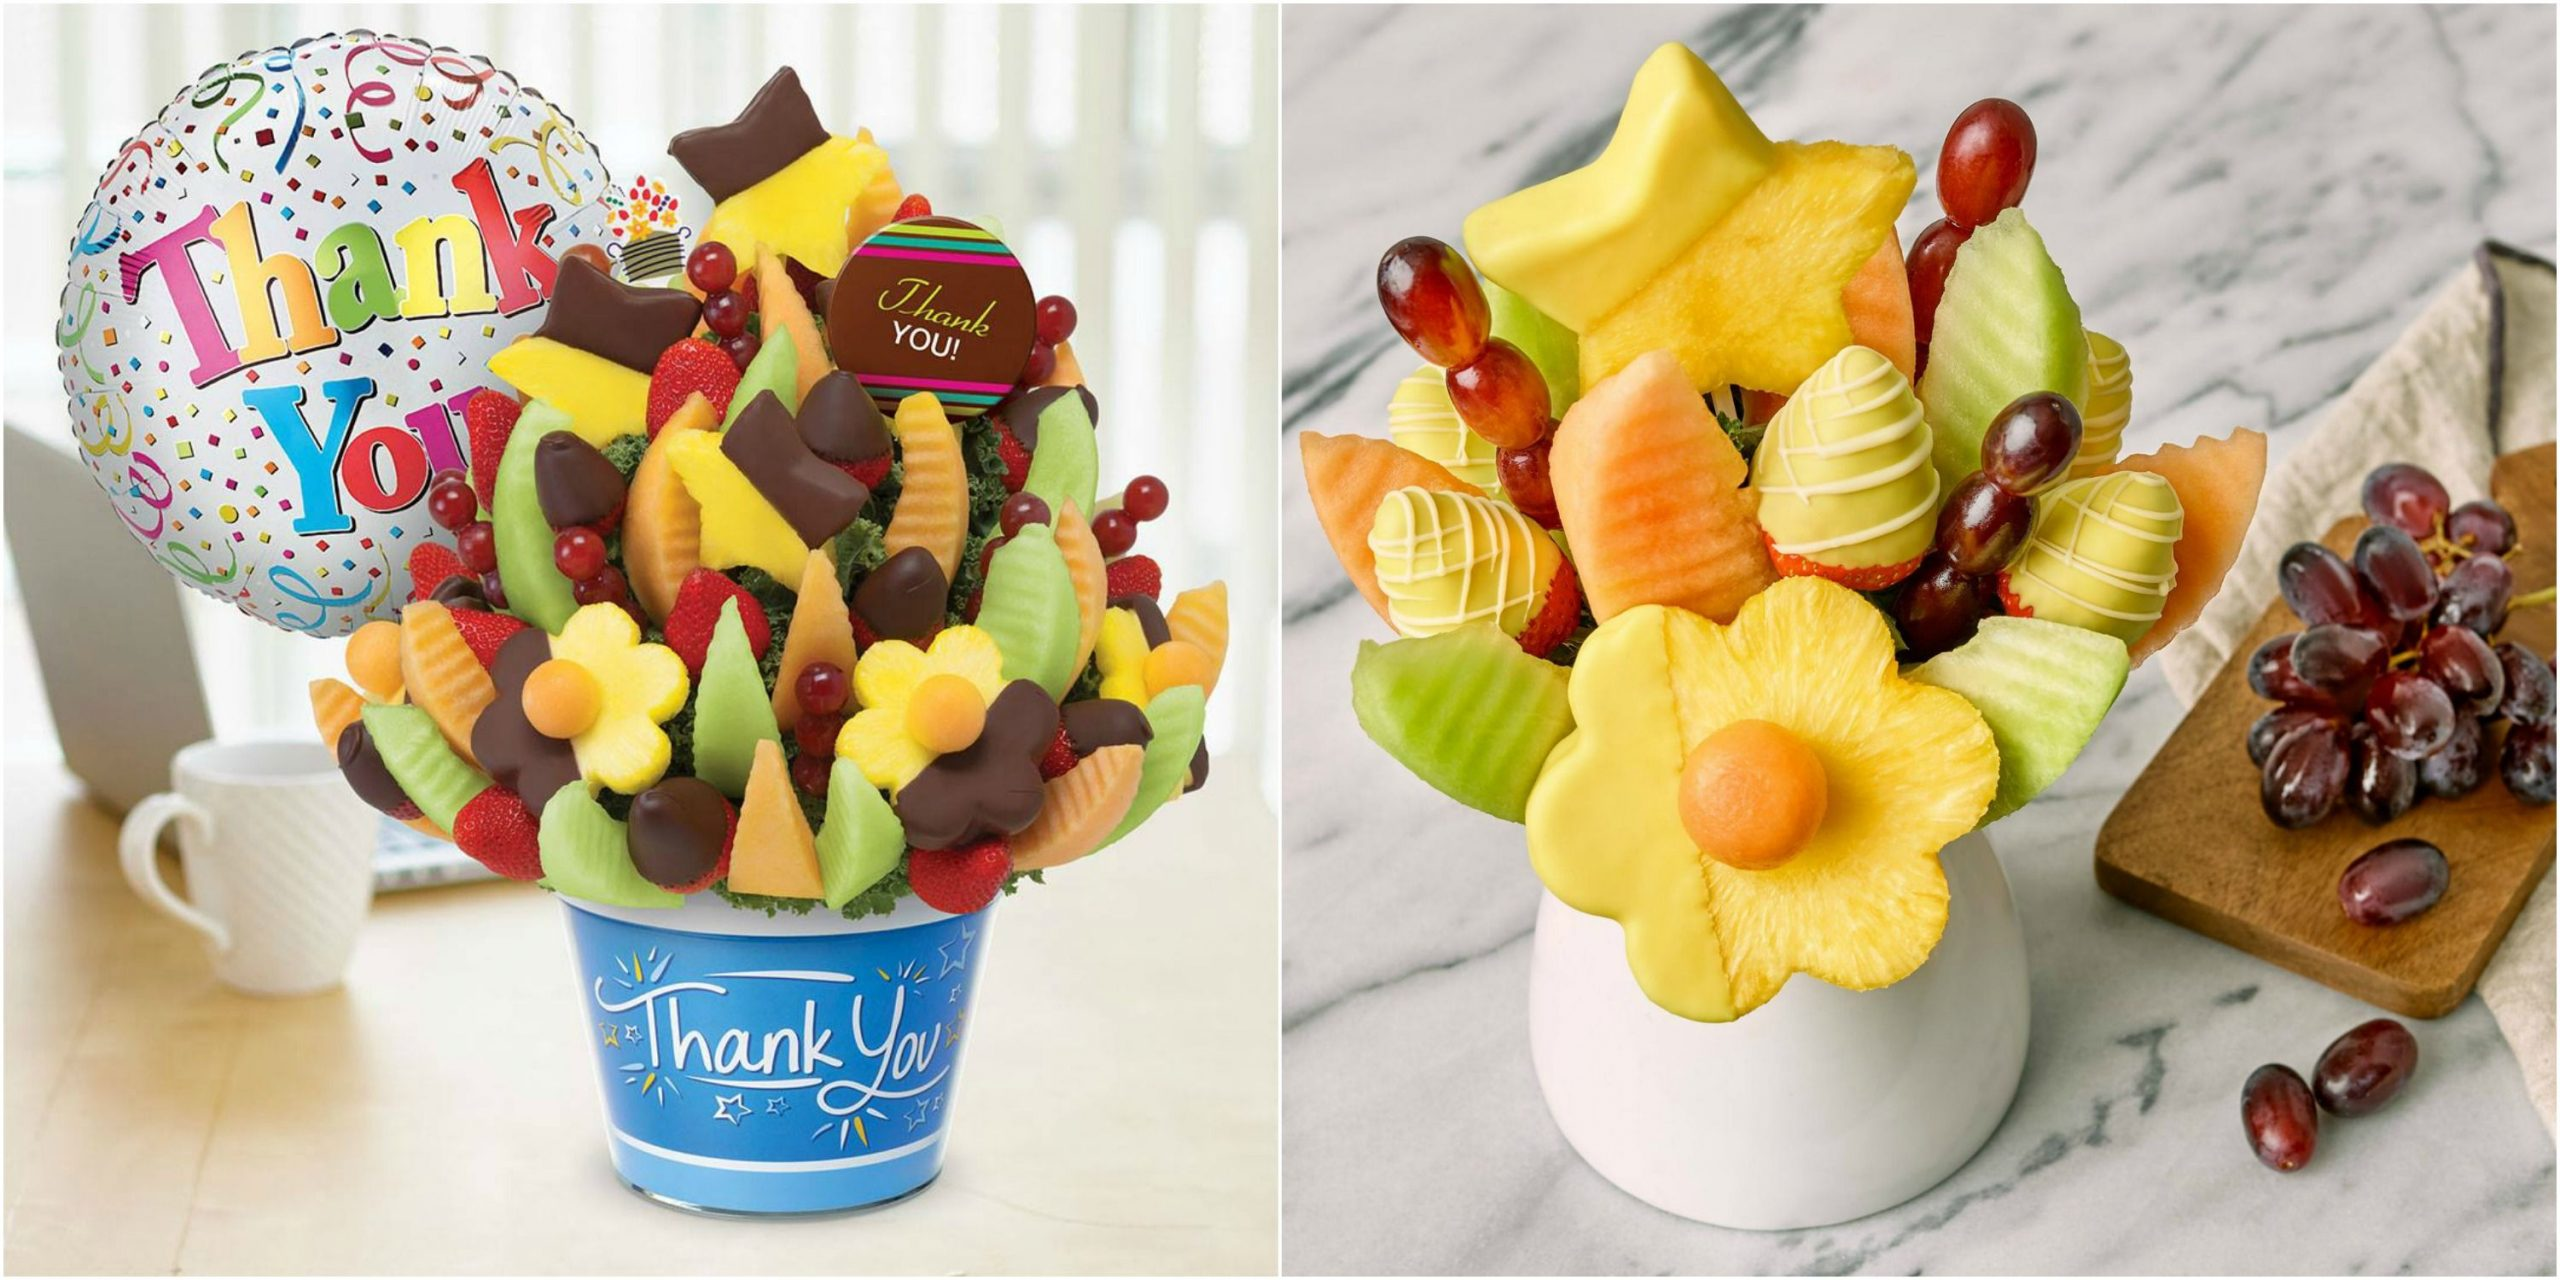 Things You Should Know Before Buying an Edible Arrangement (Delish.com)